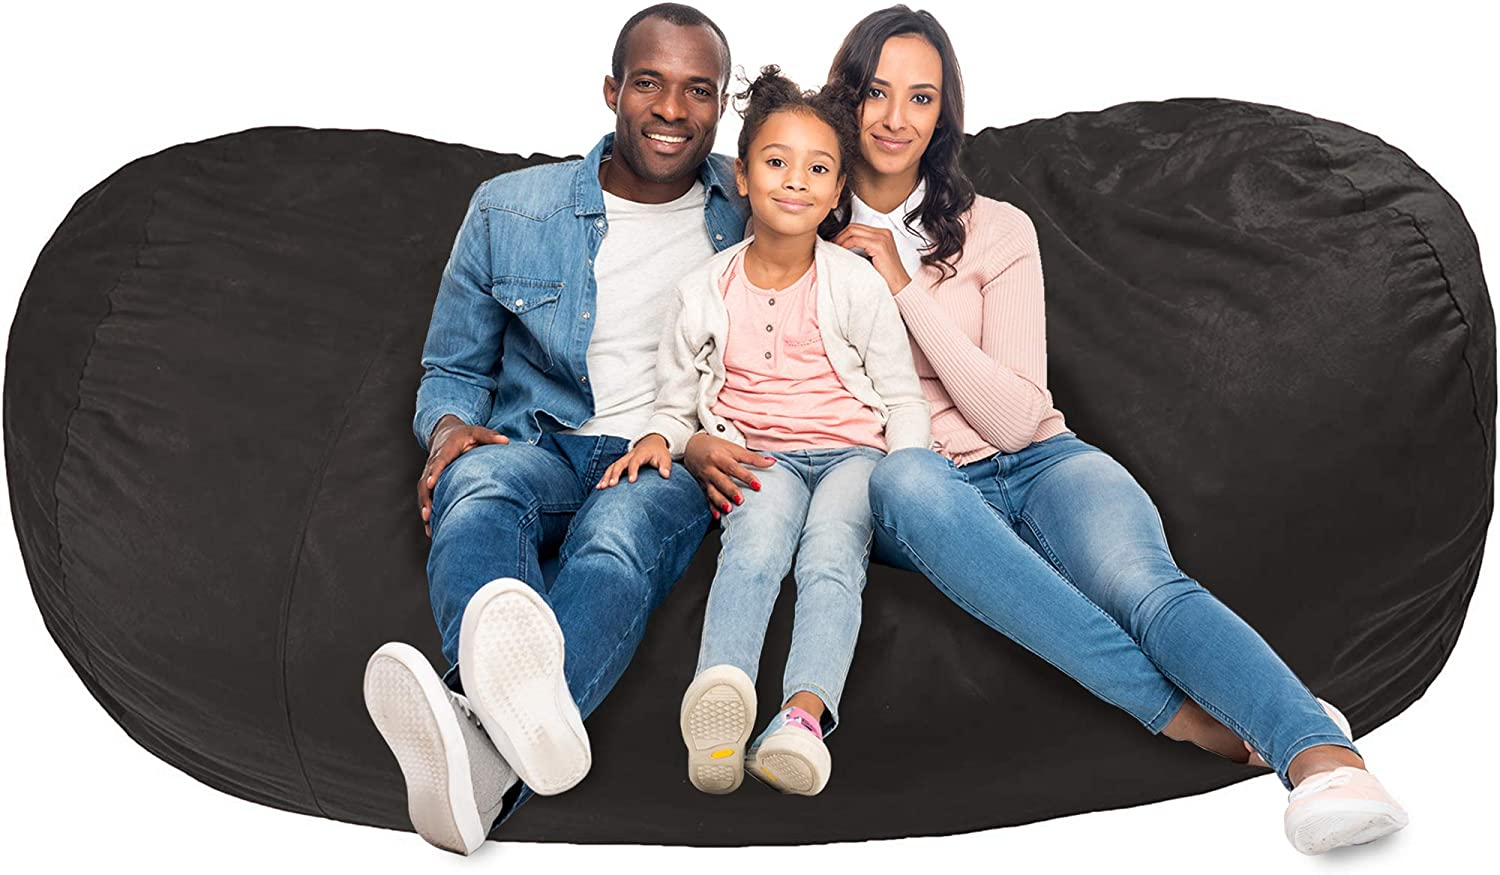 AmazonBasics Memory Foam Filled Bean Bag Lounger with Microfiber Cover - 7', Gray